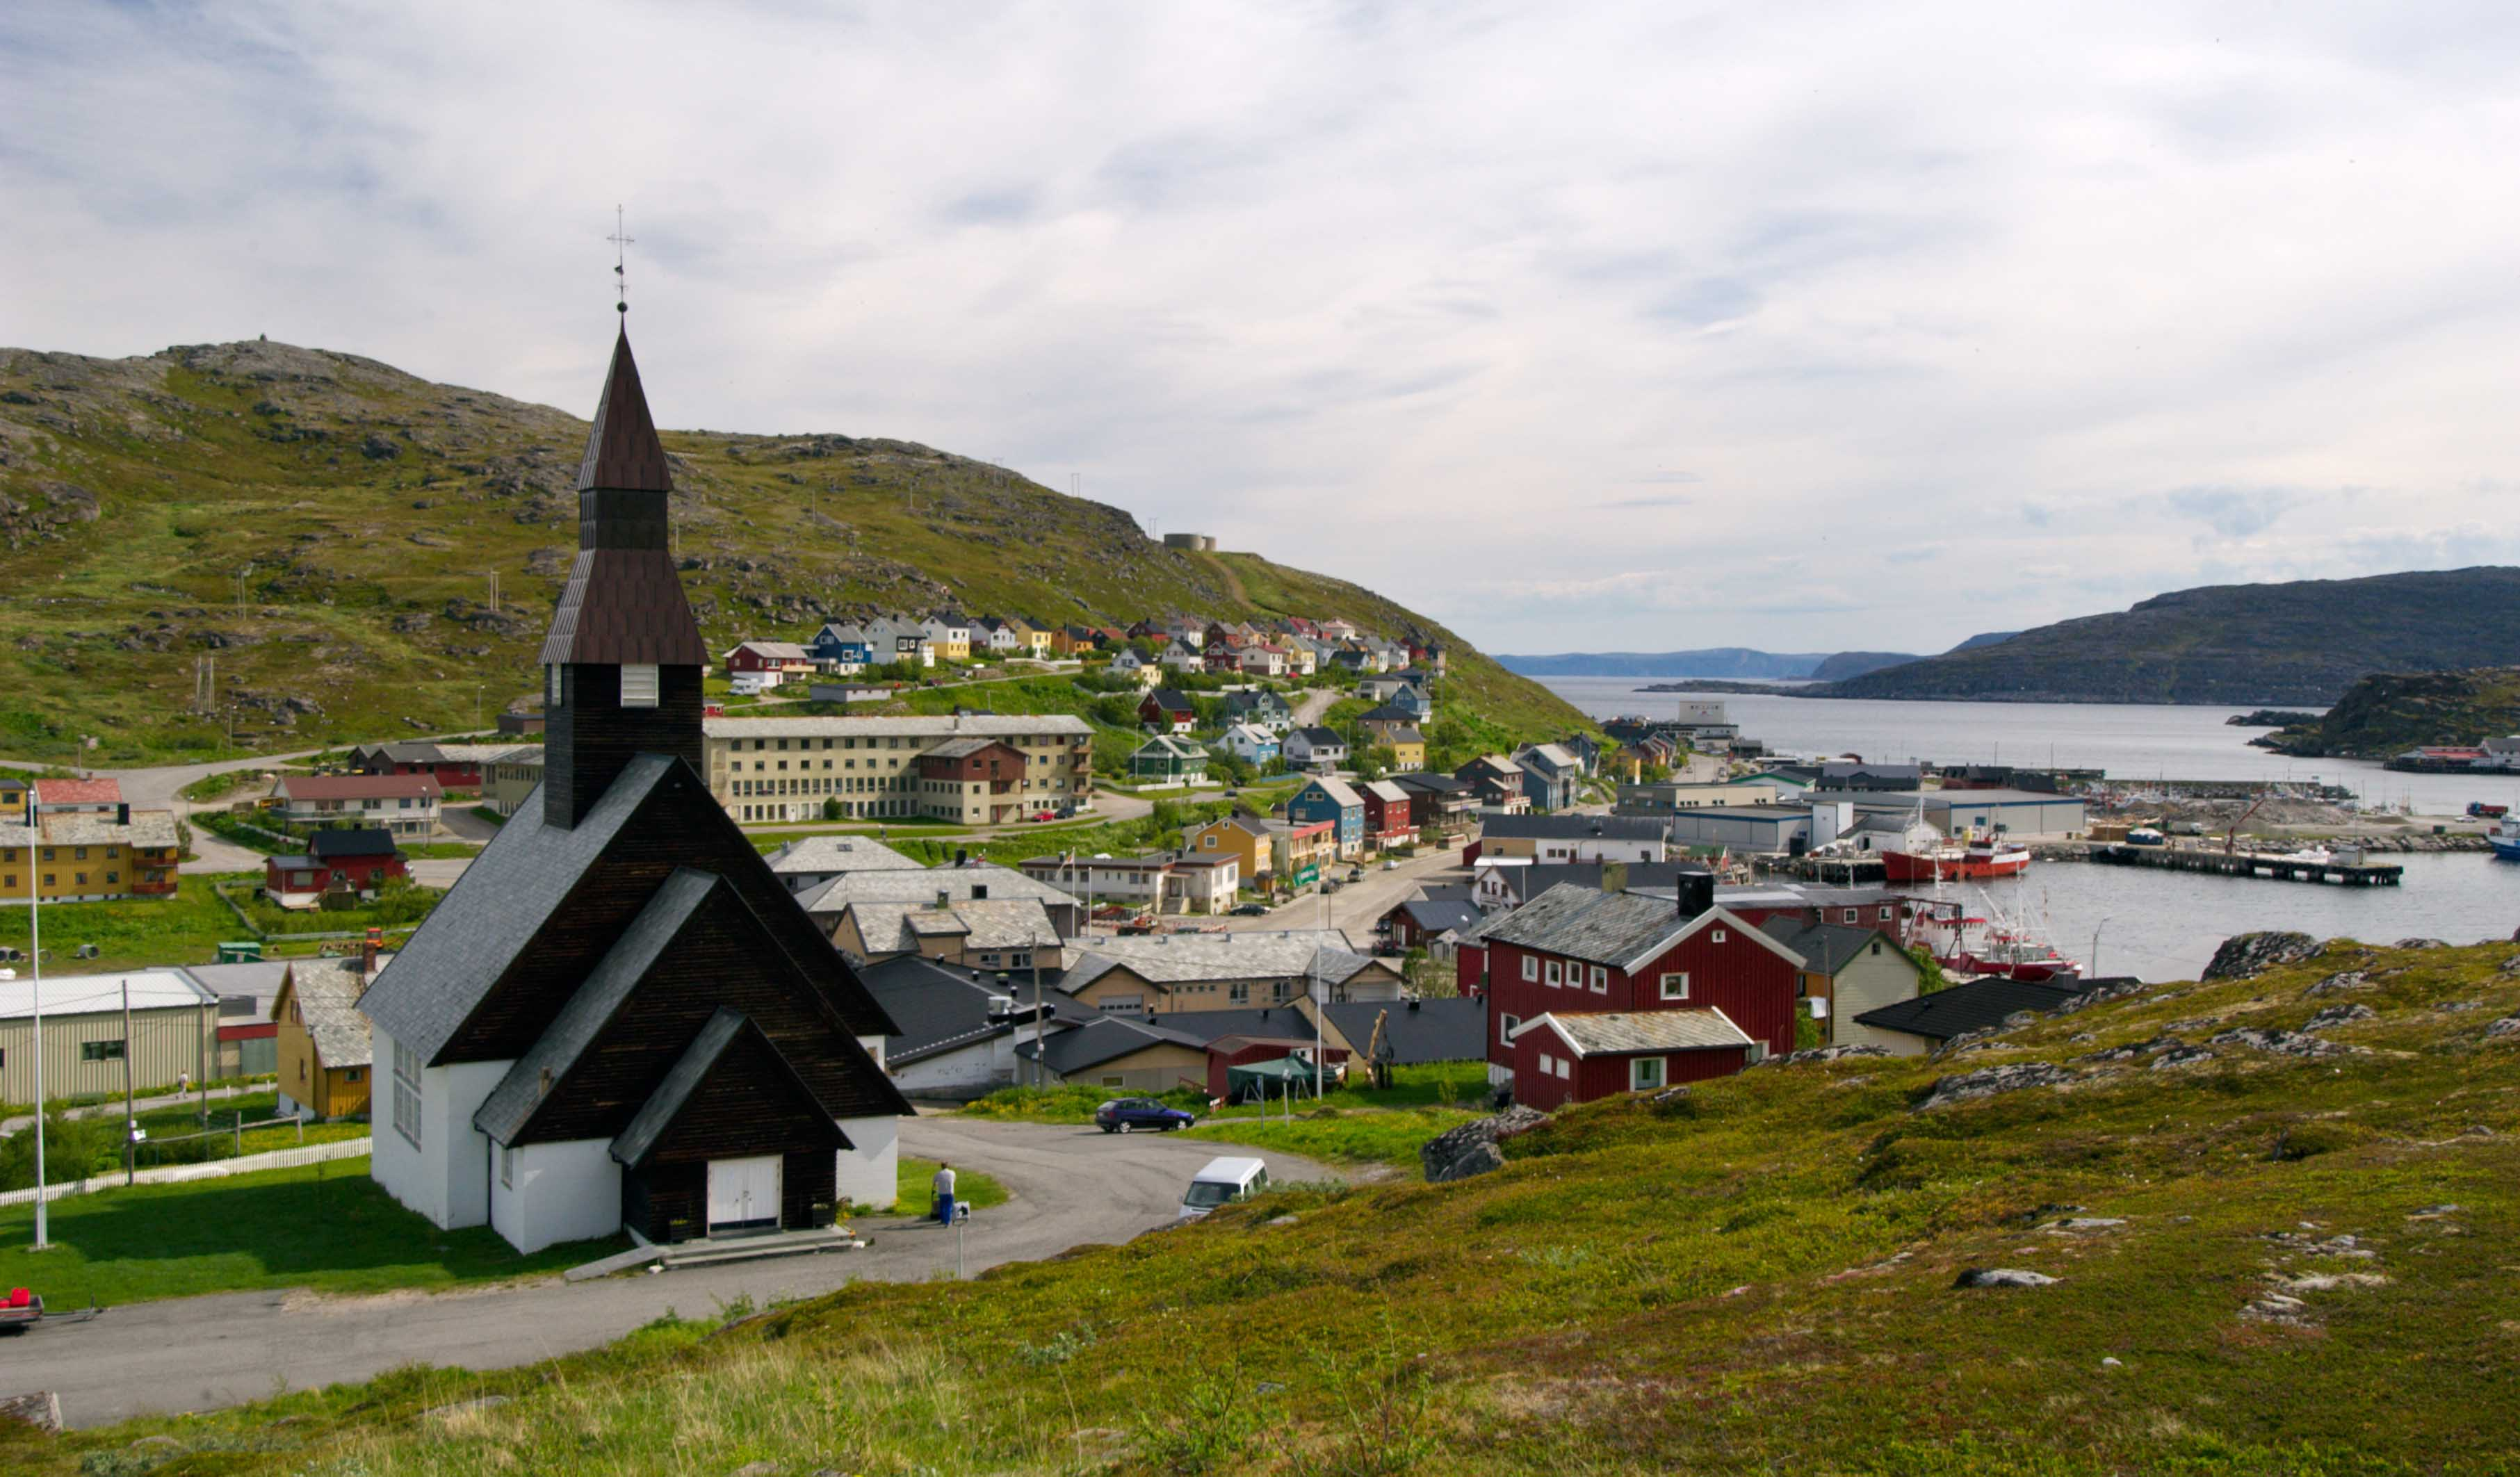 Church and houses in the small town of Havøysund in Måsøy, Finnmark.